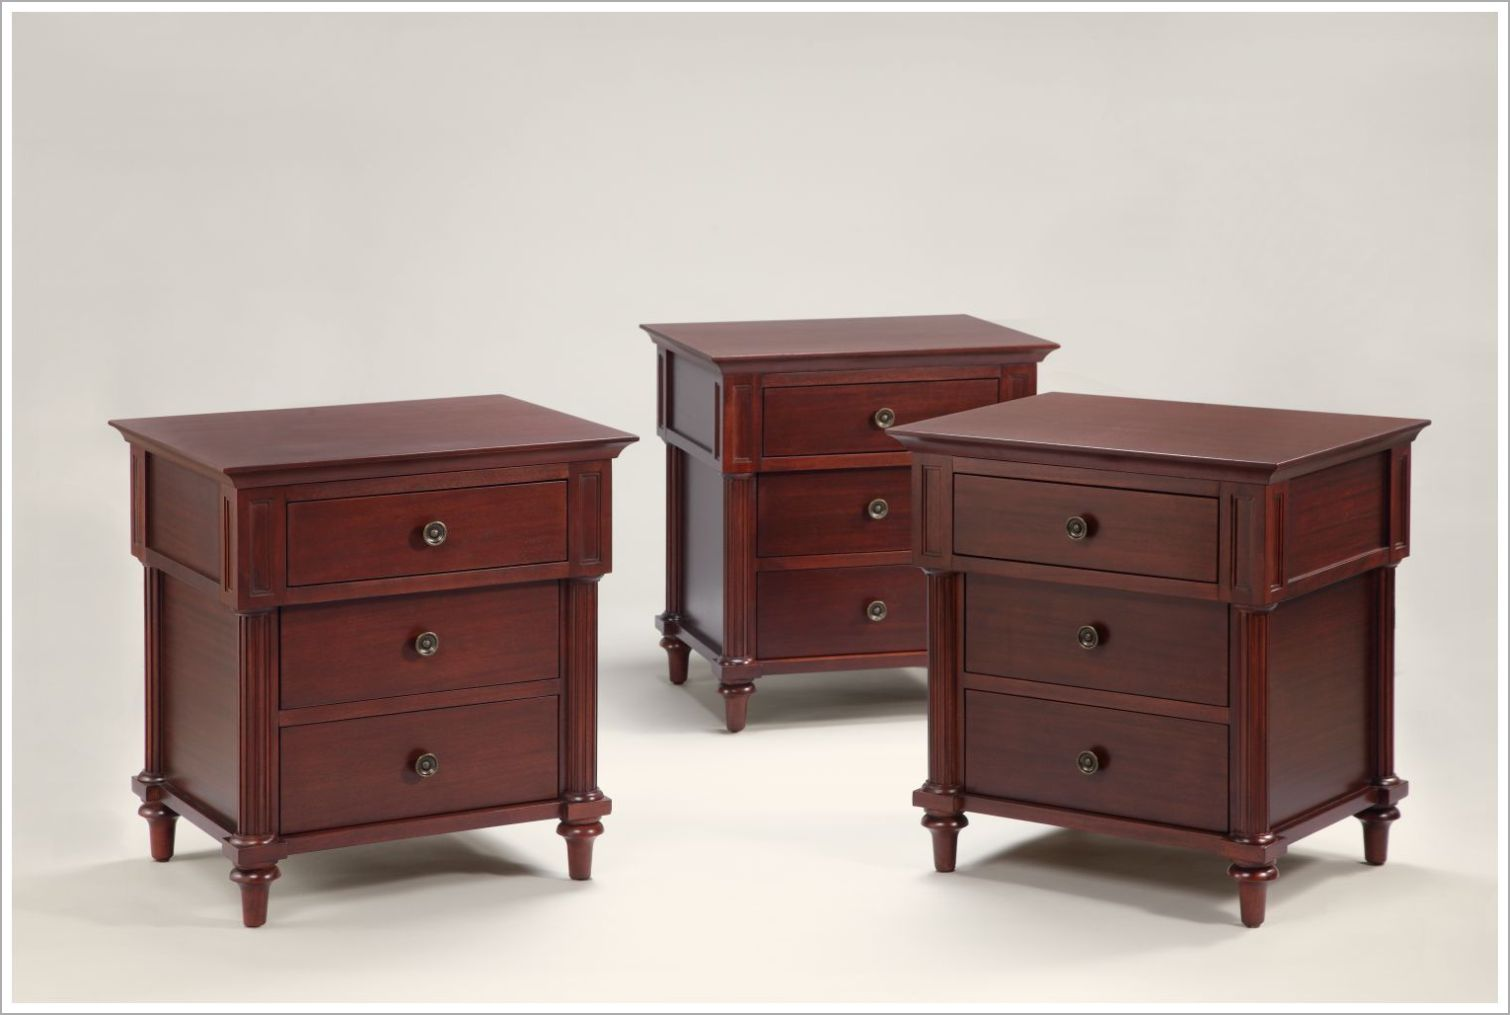 Custom Mahogany Hotel Nightstands with Three Drawers